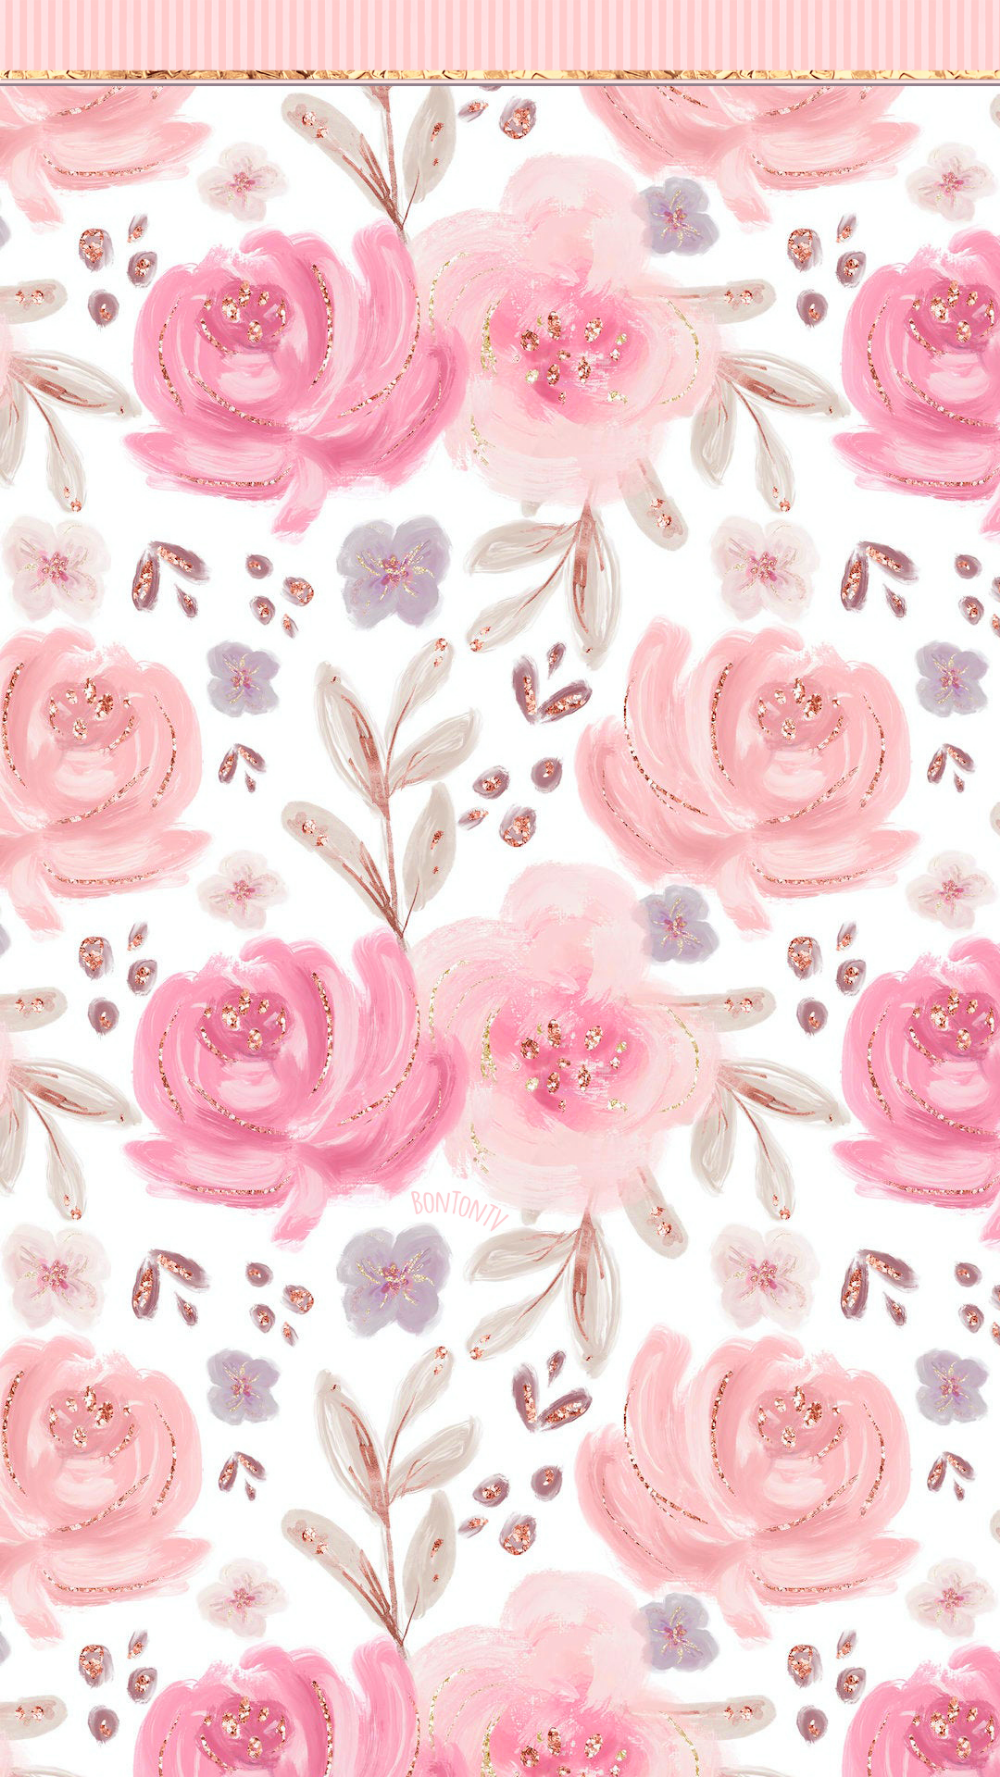 Phone Wallpapers Hd Glitter Roses Watercolor By Bonton Tv